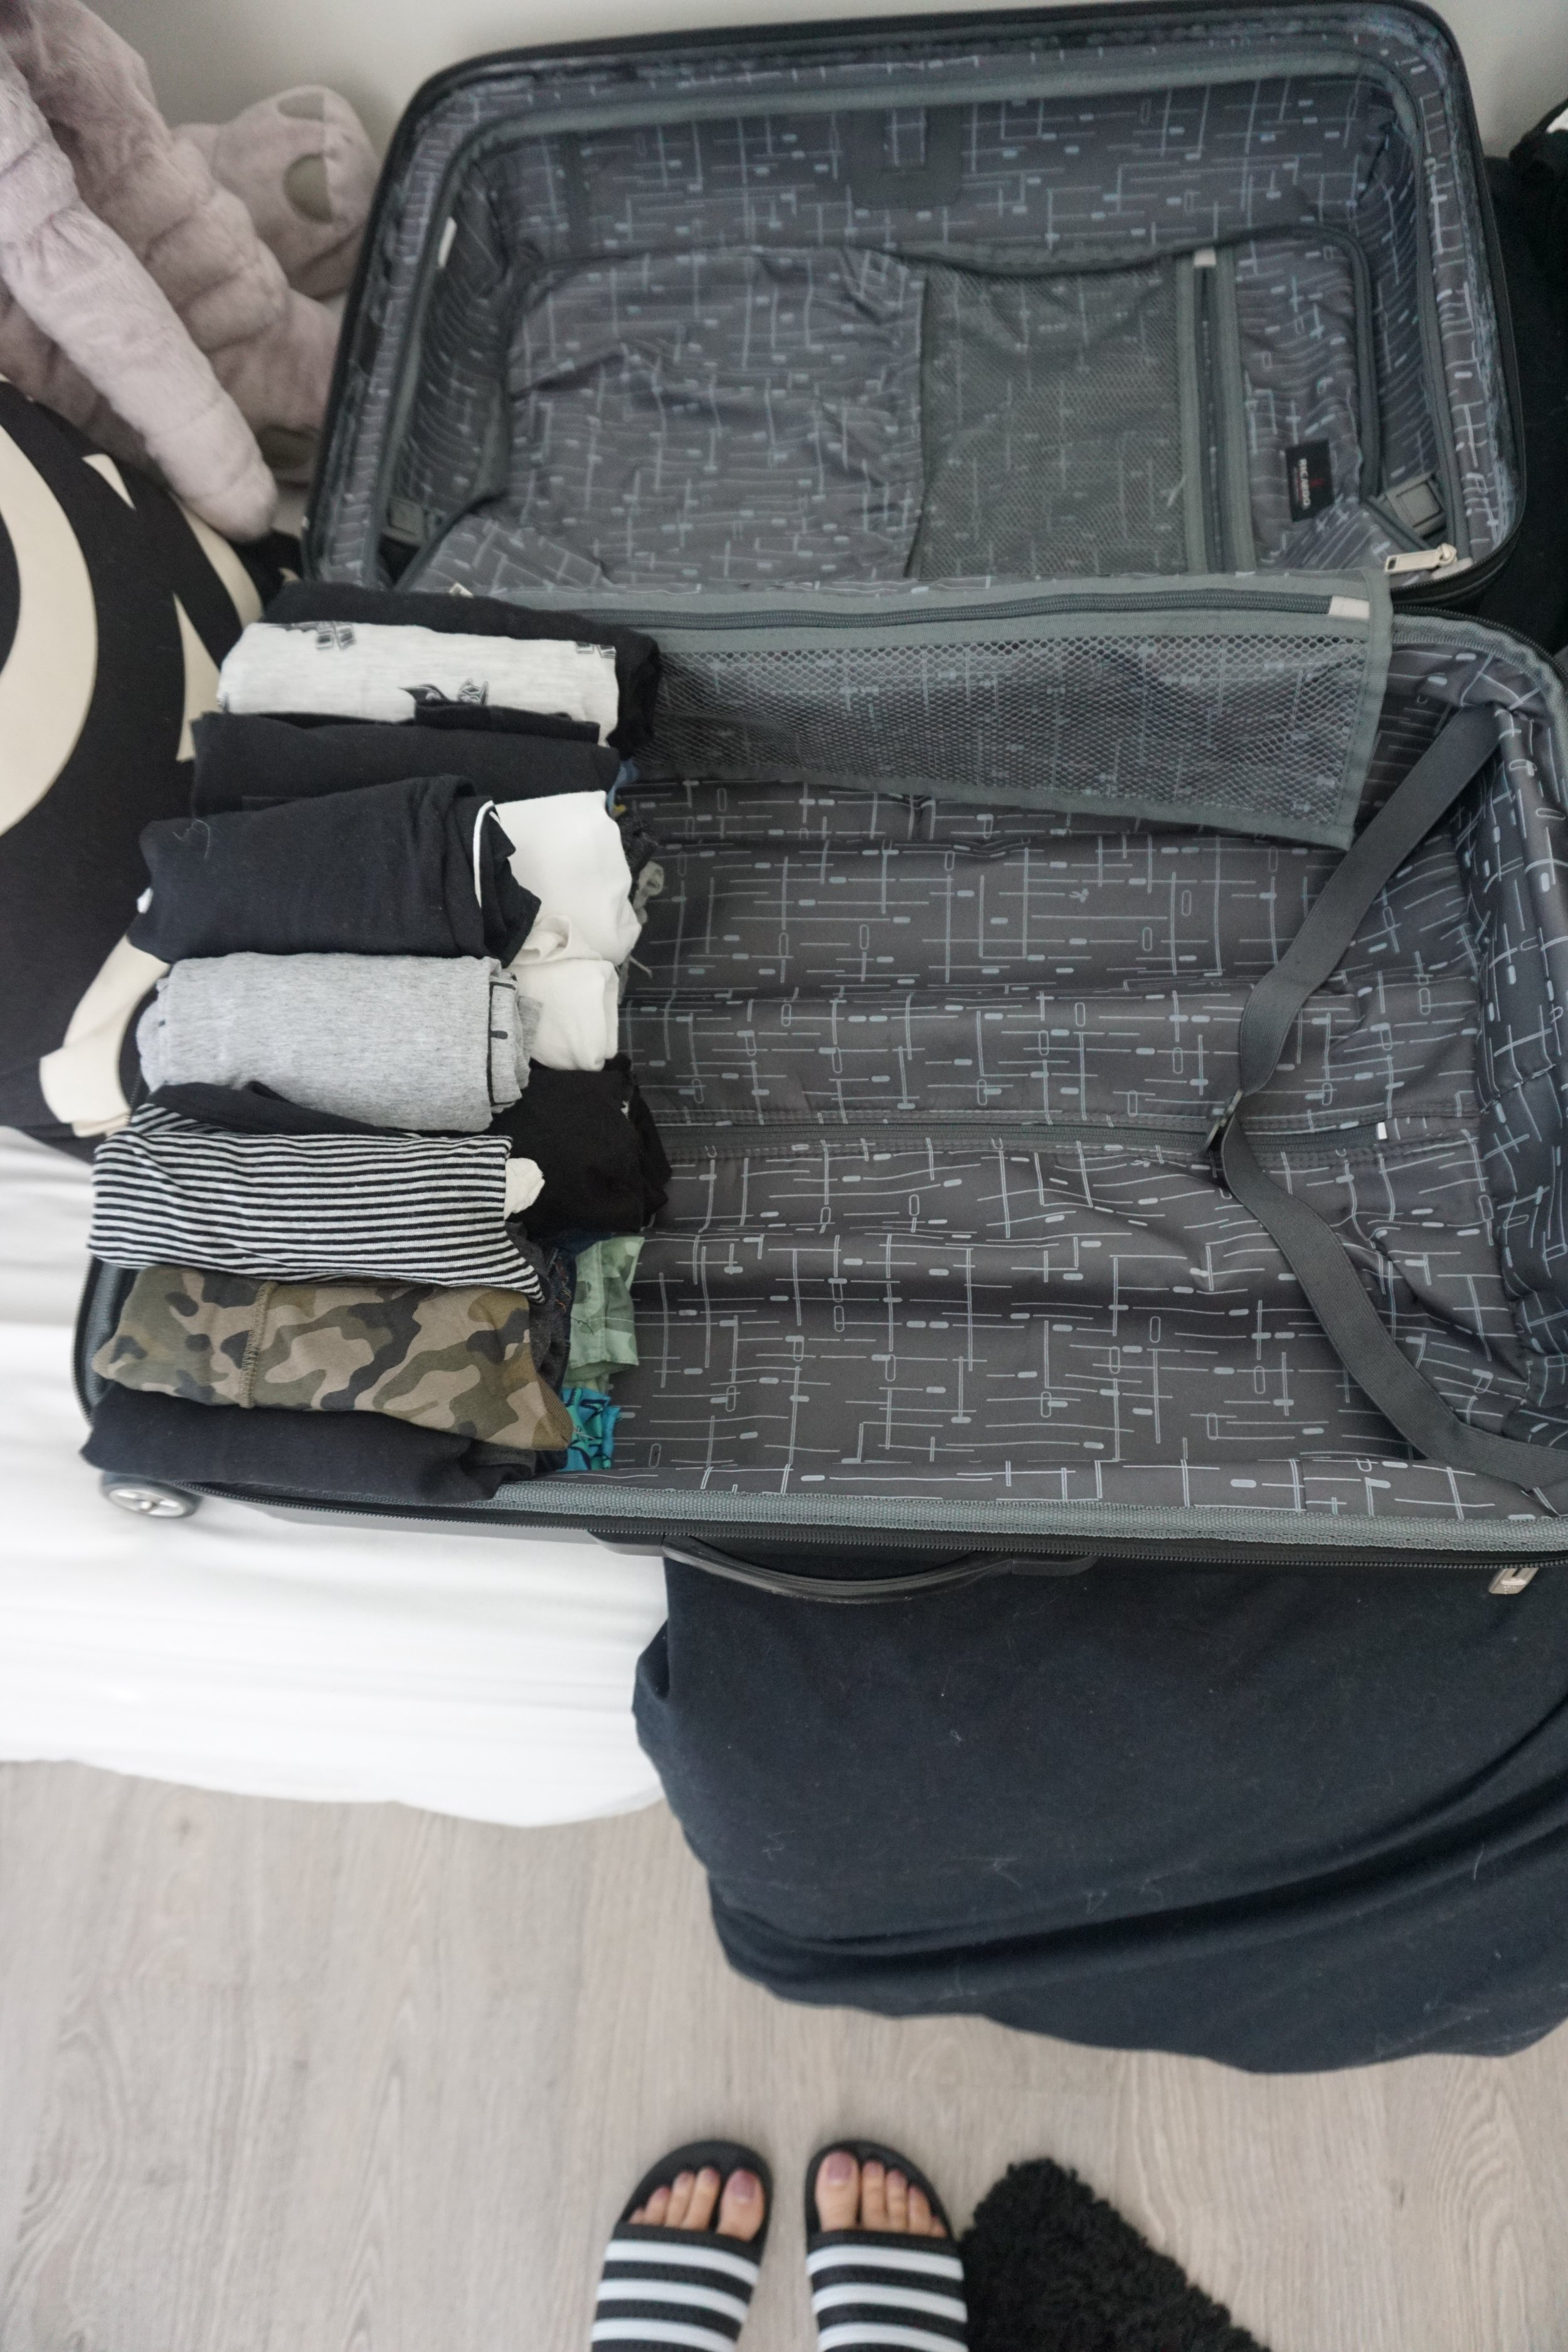 Hudson's stuff takes up 1/3 of the suit case and the rest is for me!